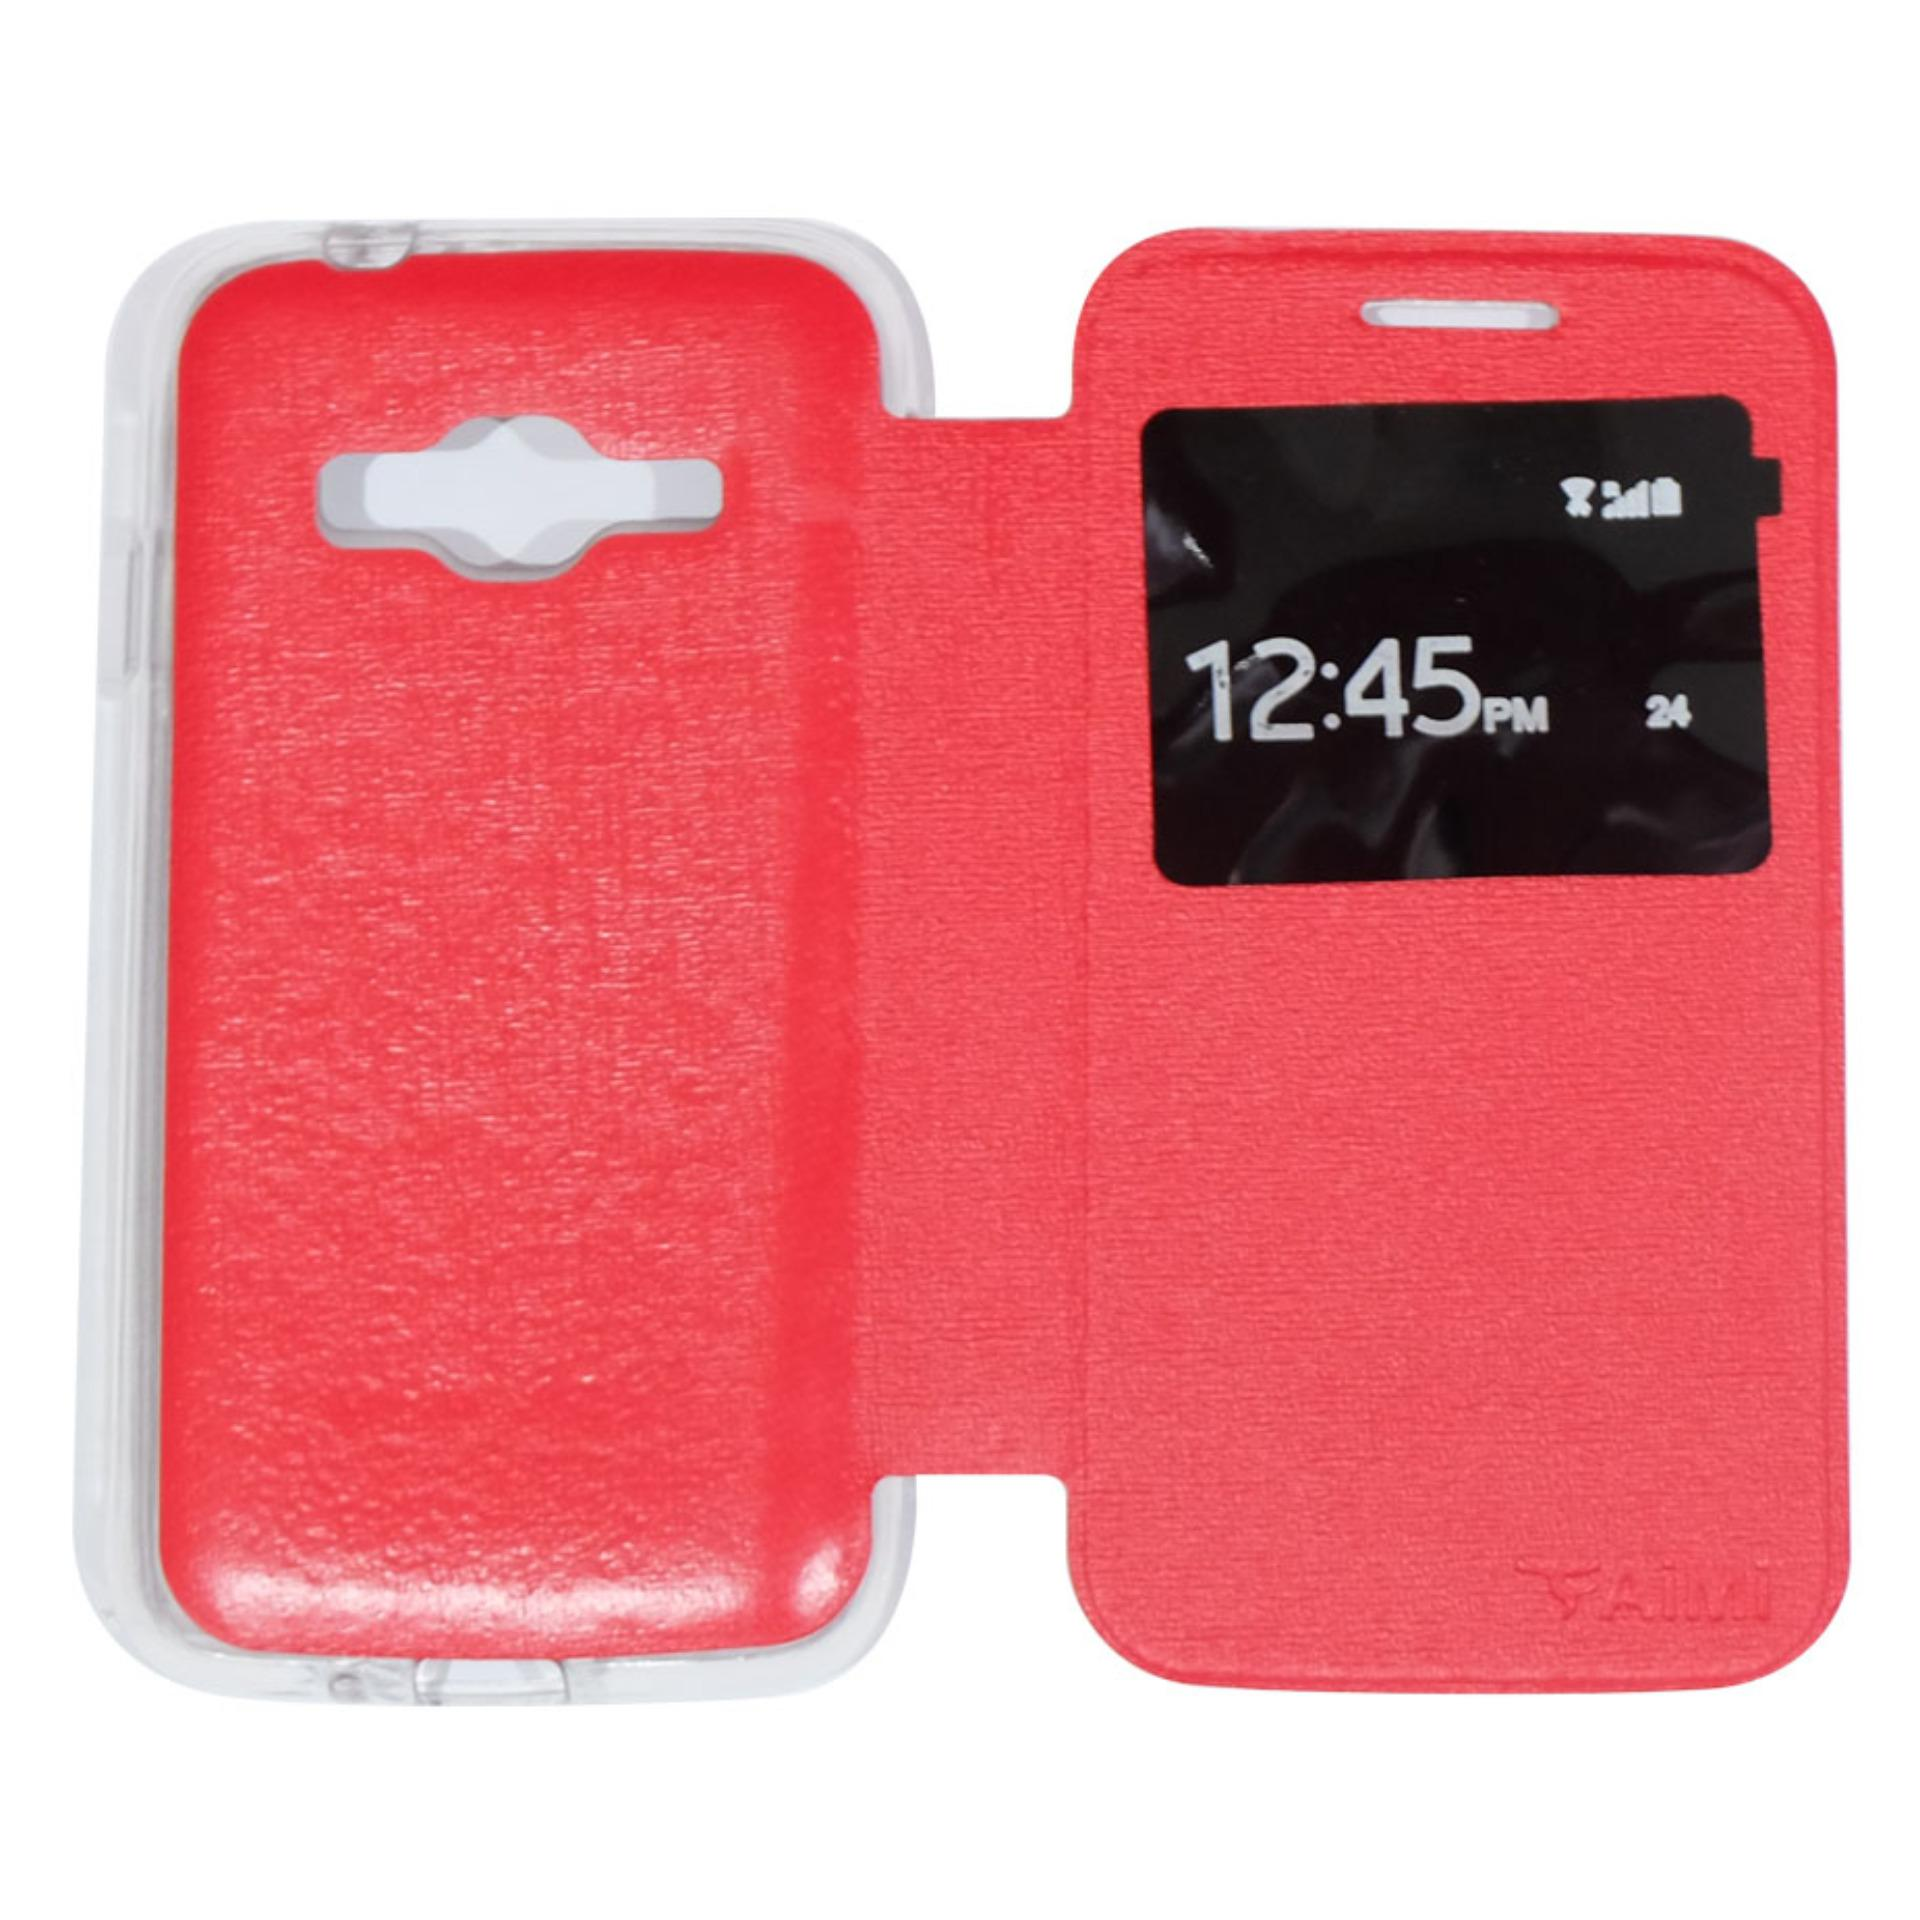 Flash Sale AIMI FlipCover Sarung Kulit For Samsung Galaxy J1 Mini Prime V2Flipshell / Leather Case / Flip Cover Kulit / Sarung Case / SarungHandphone ...